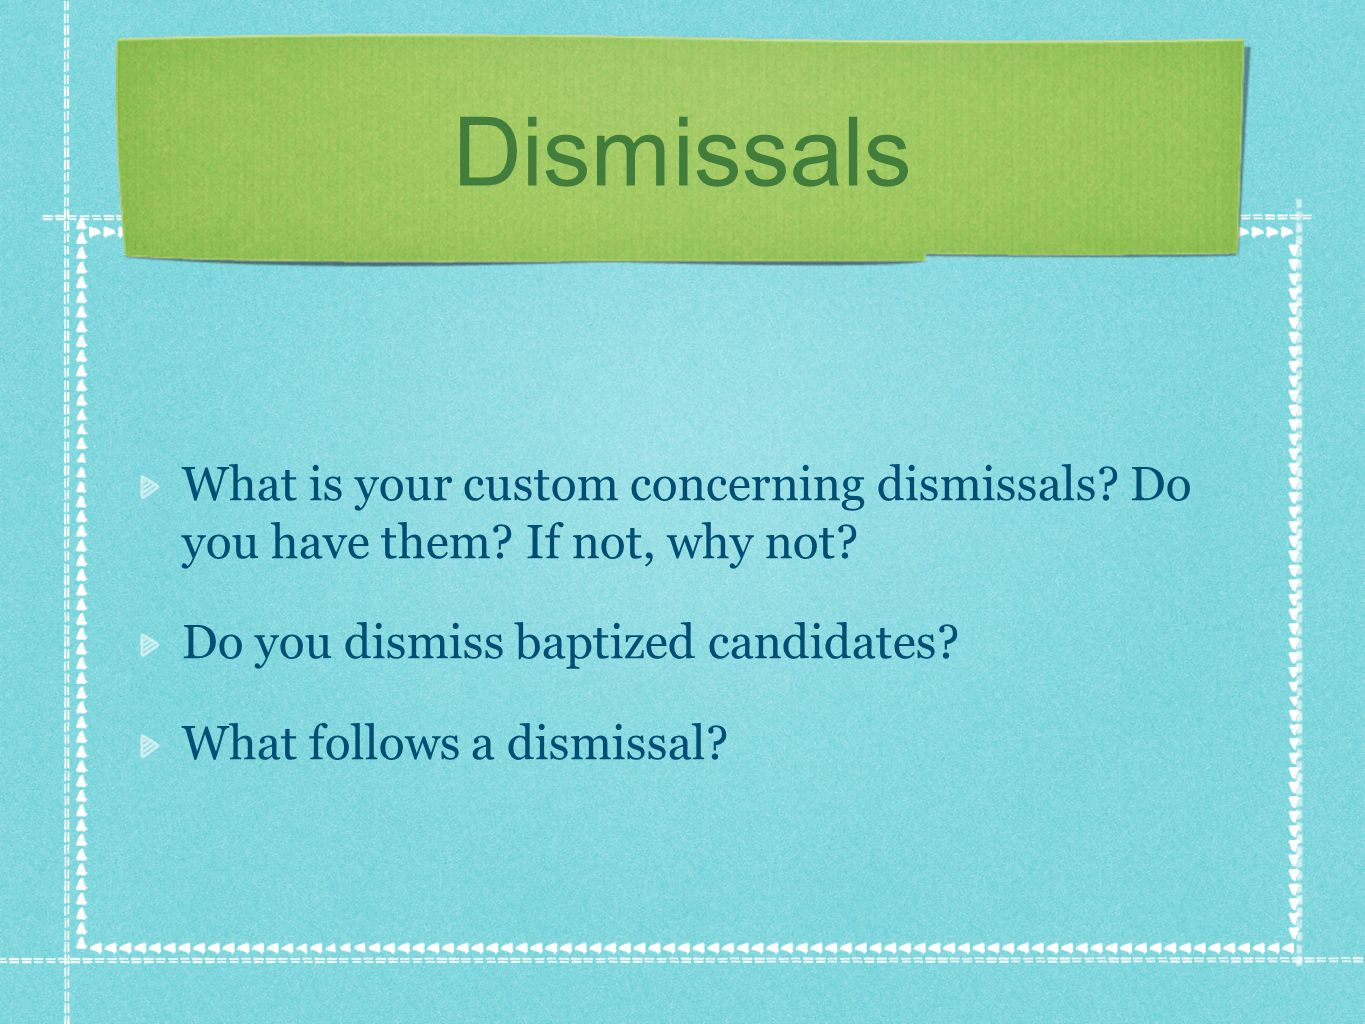 Dismissals What is your custom concerning dismissals? Do you have them? If not, why not? Do you dismiss baptized candidates? What follows a dismissal?